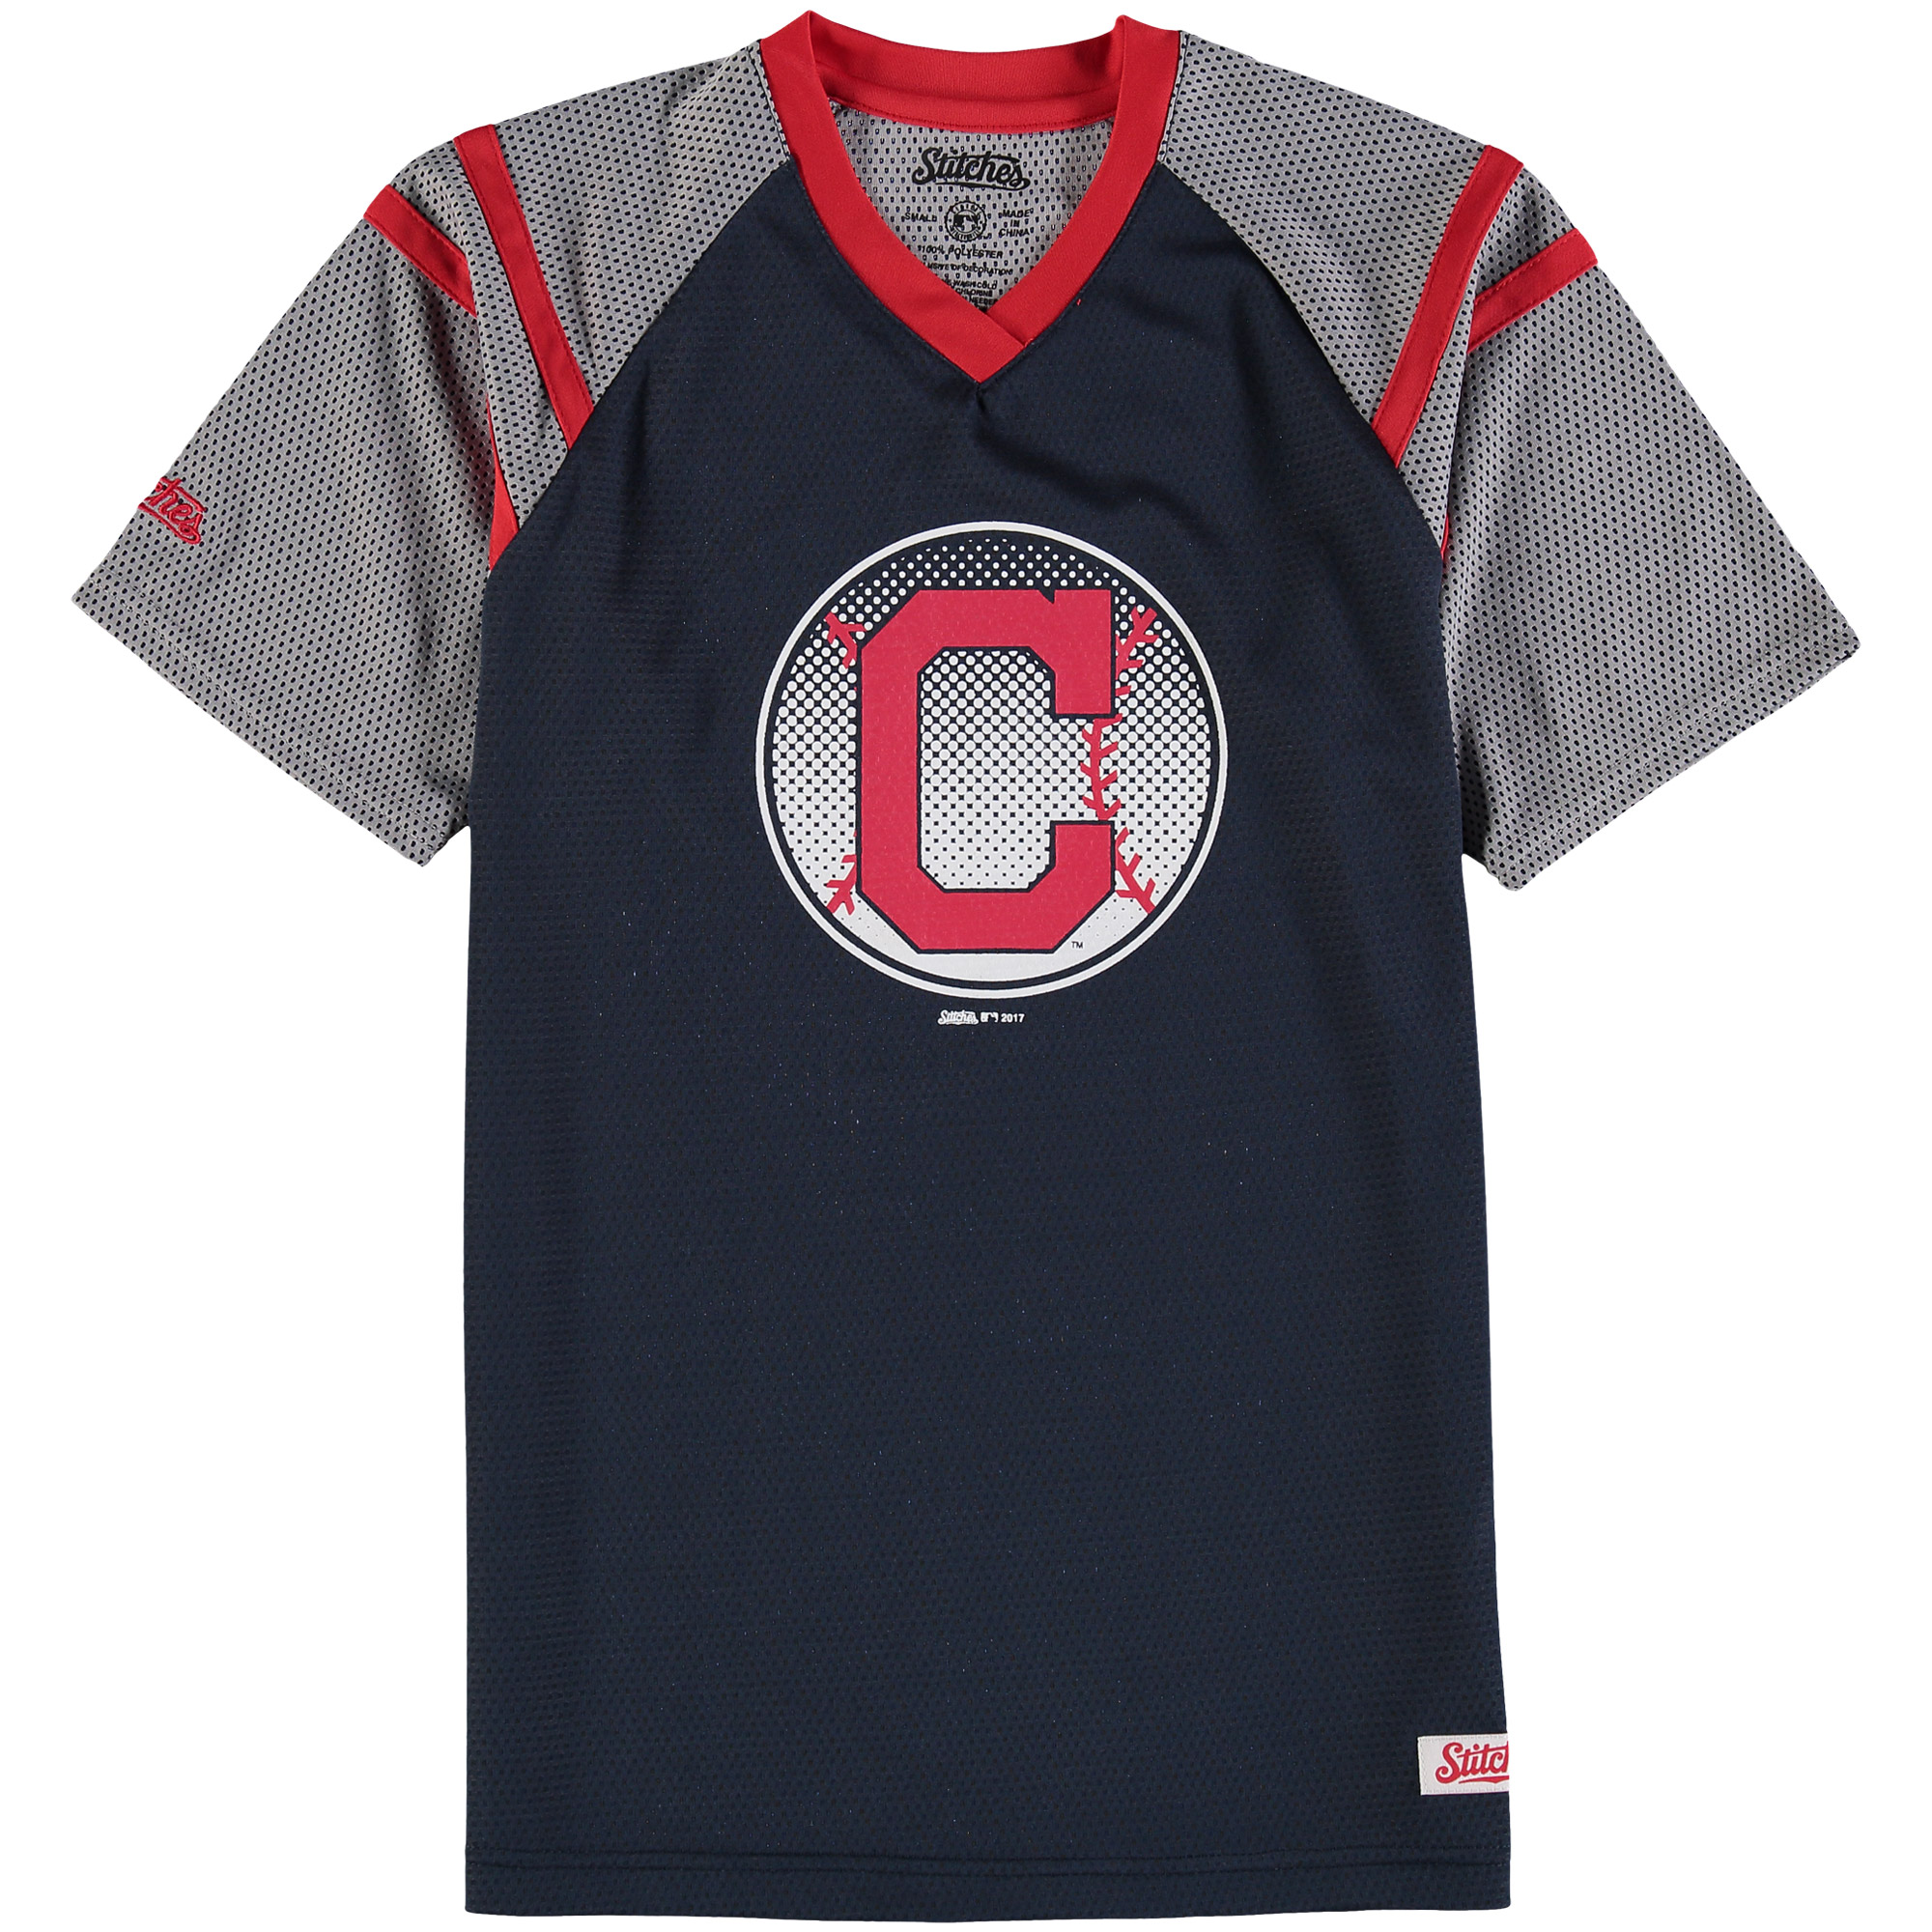 Cleveland Indians Stitches Youth Mesh V-Neck Jersey T-Shirt - Navy/Red